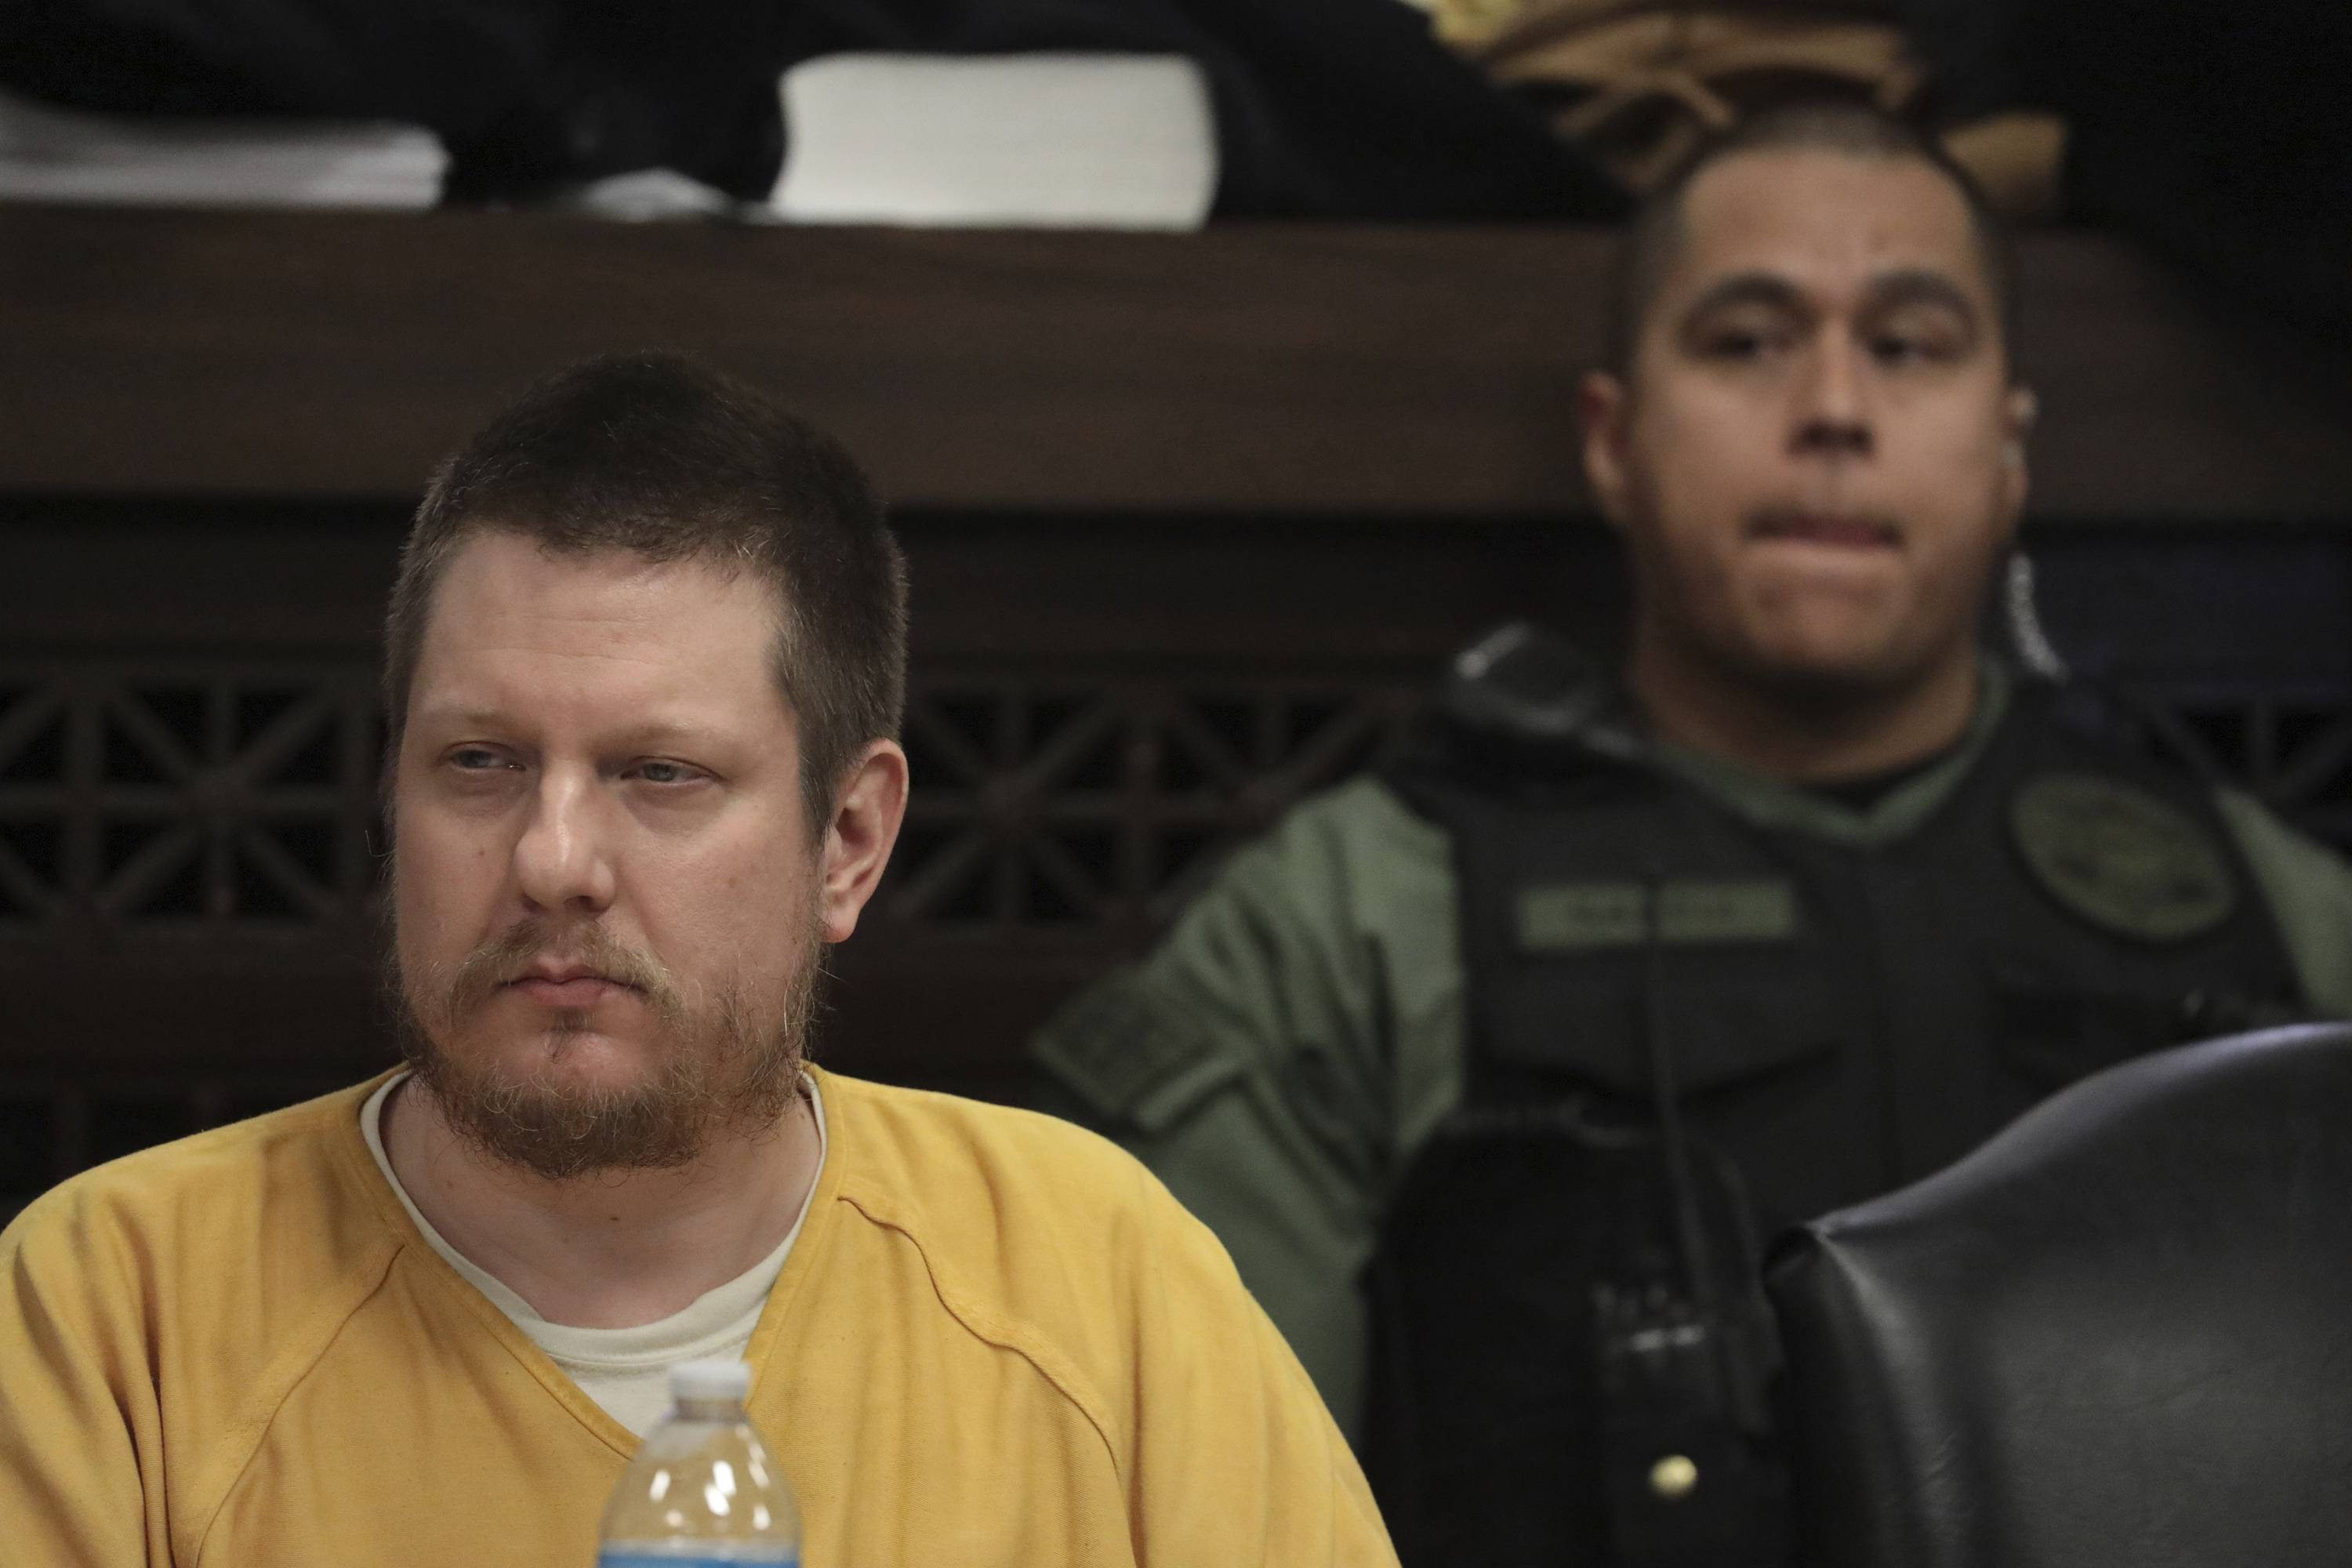 Former Chicago police officer Jason Van Dyke awaits his sentence Friday at the Leighton Criminal Court Building in Chicago. Van Dyke was convicted last year of second-degree murder and 16 counts of aggravated battery -- one for each bullet fired at Laquan McDonald.